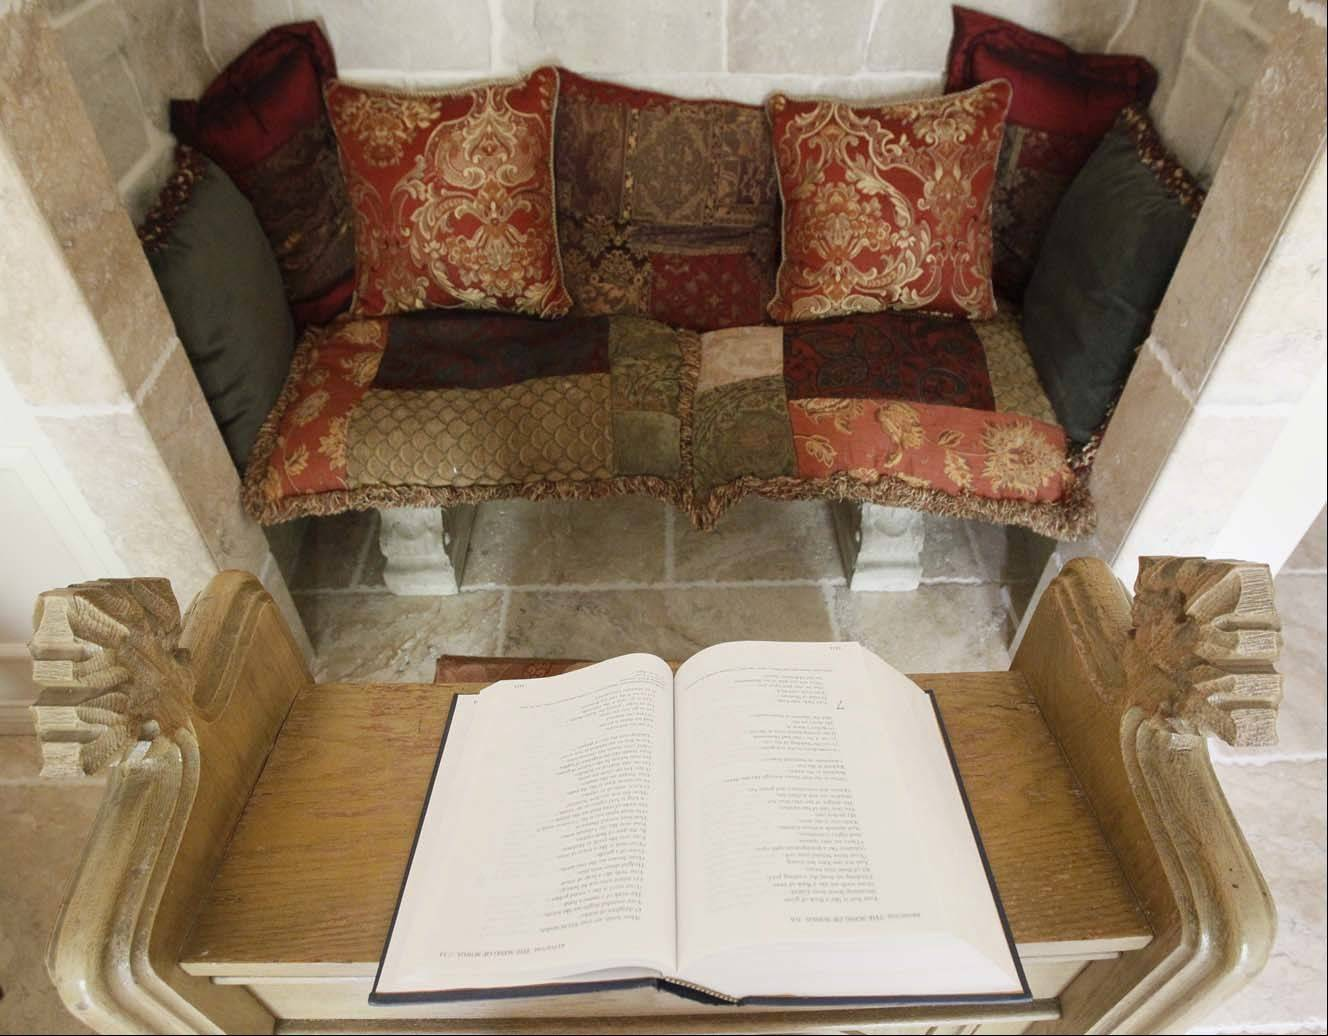 A closet in the former bedroom gave way to this stone prayer and reading alcove.